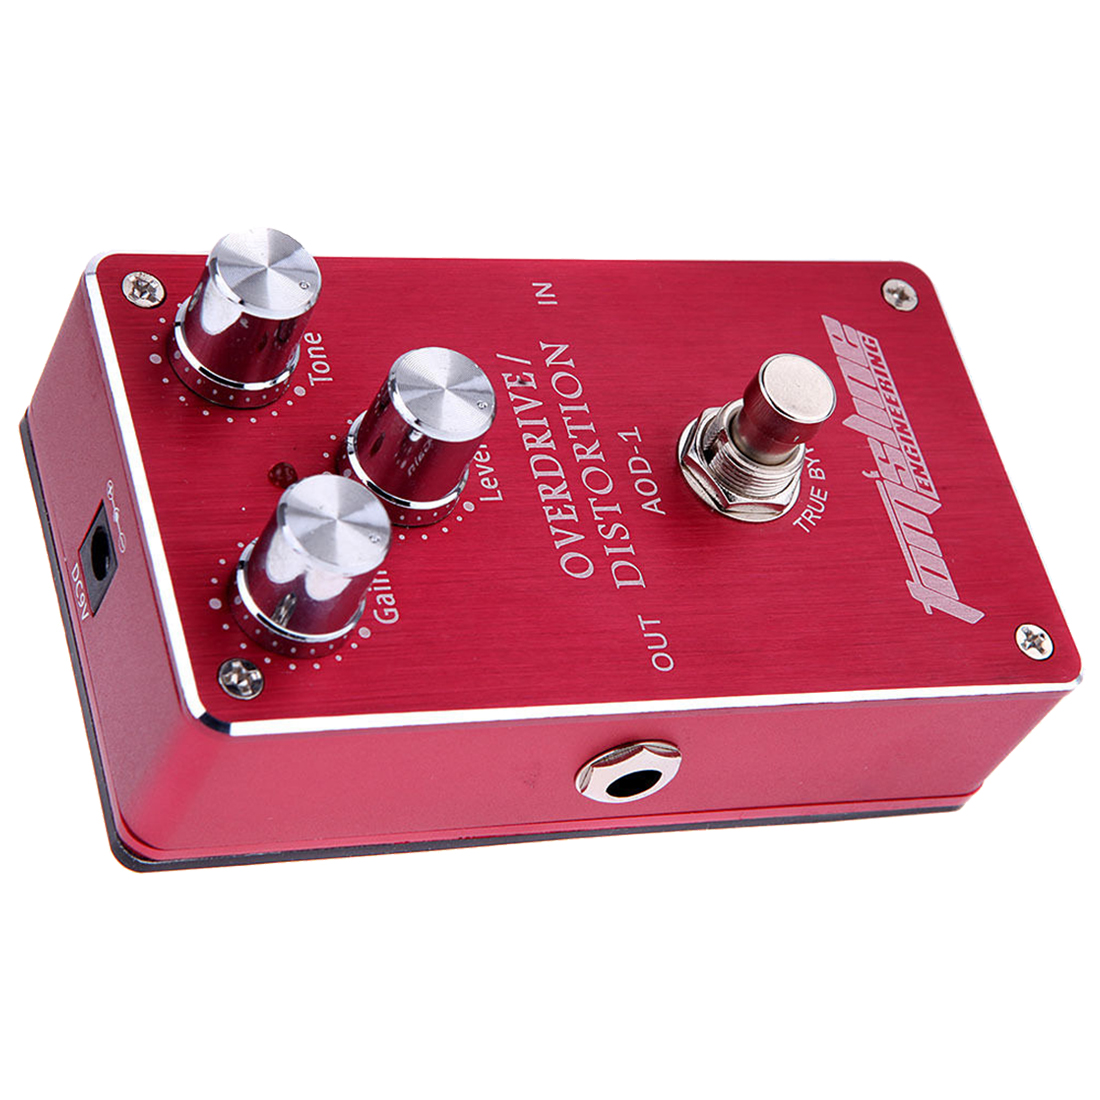 SYDS Aroma AOD-1 Electric Guitar Bass Overdrive Distortion Effect Pedal True Bypass aroma aos 3 octpus polyphonic octave electric guitar effect pedal mini single effect with true bypass